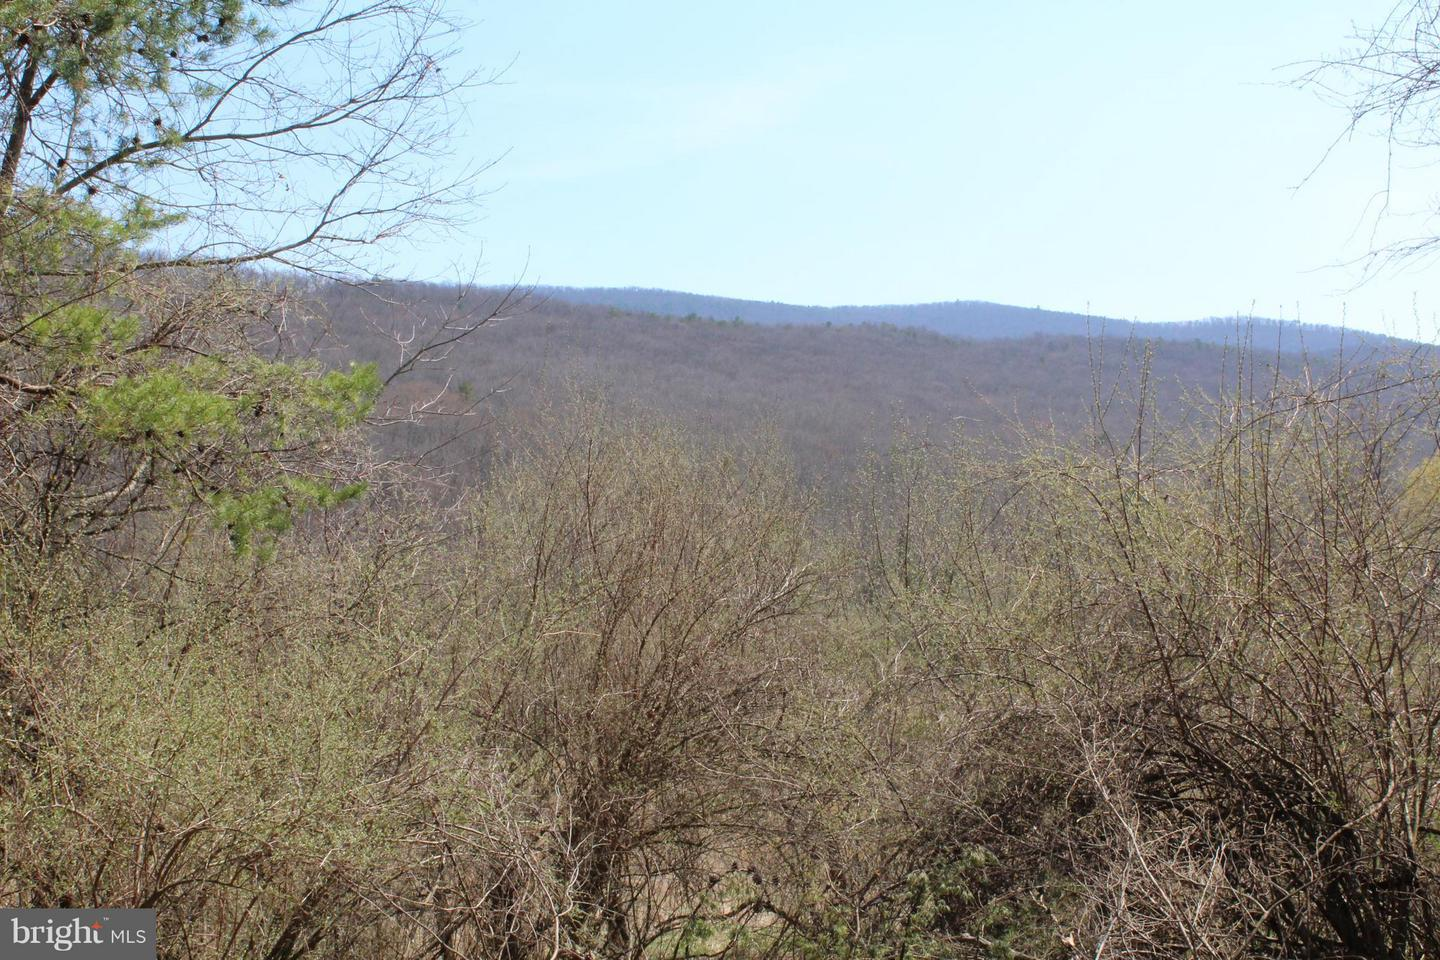 Land for Sale at Lot B12 Honeymoon Hollow Rd Lost City, West Virginia 26810 United States